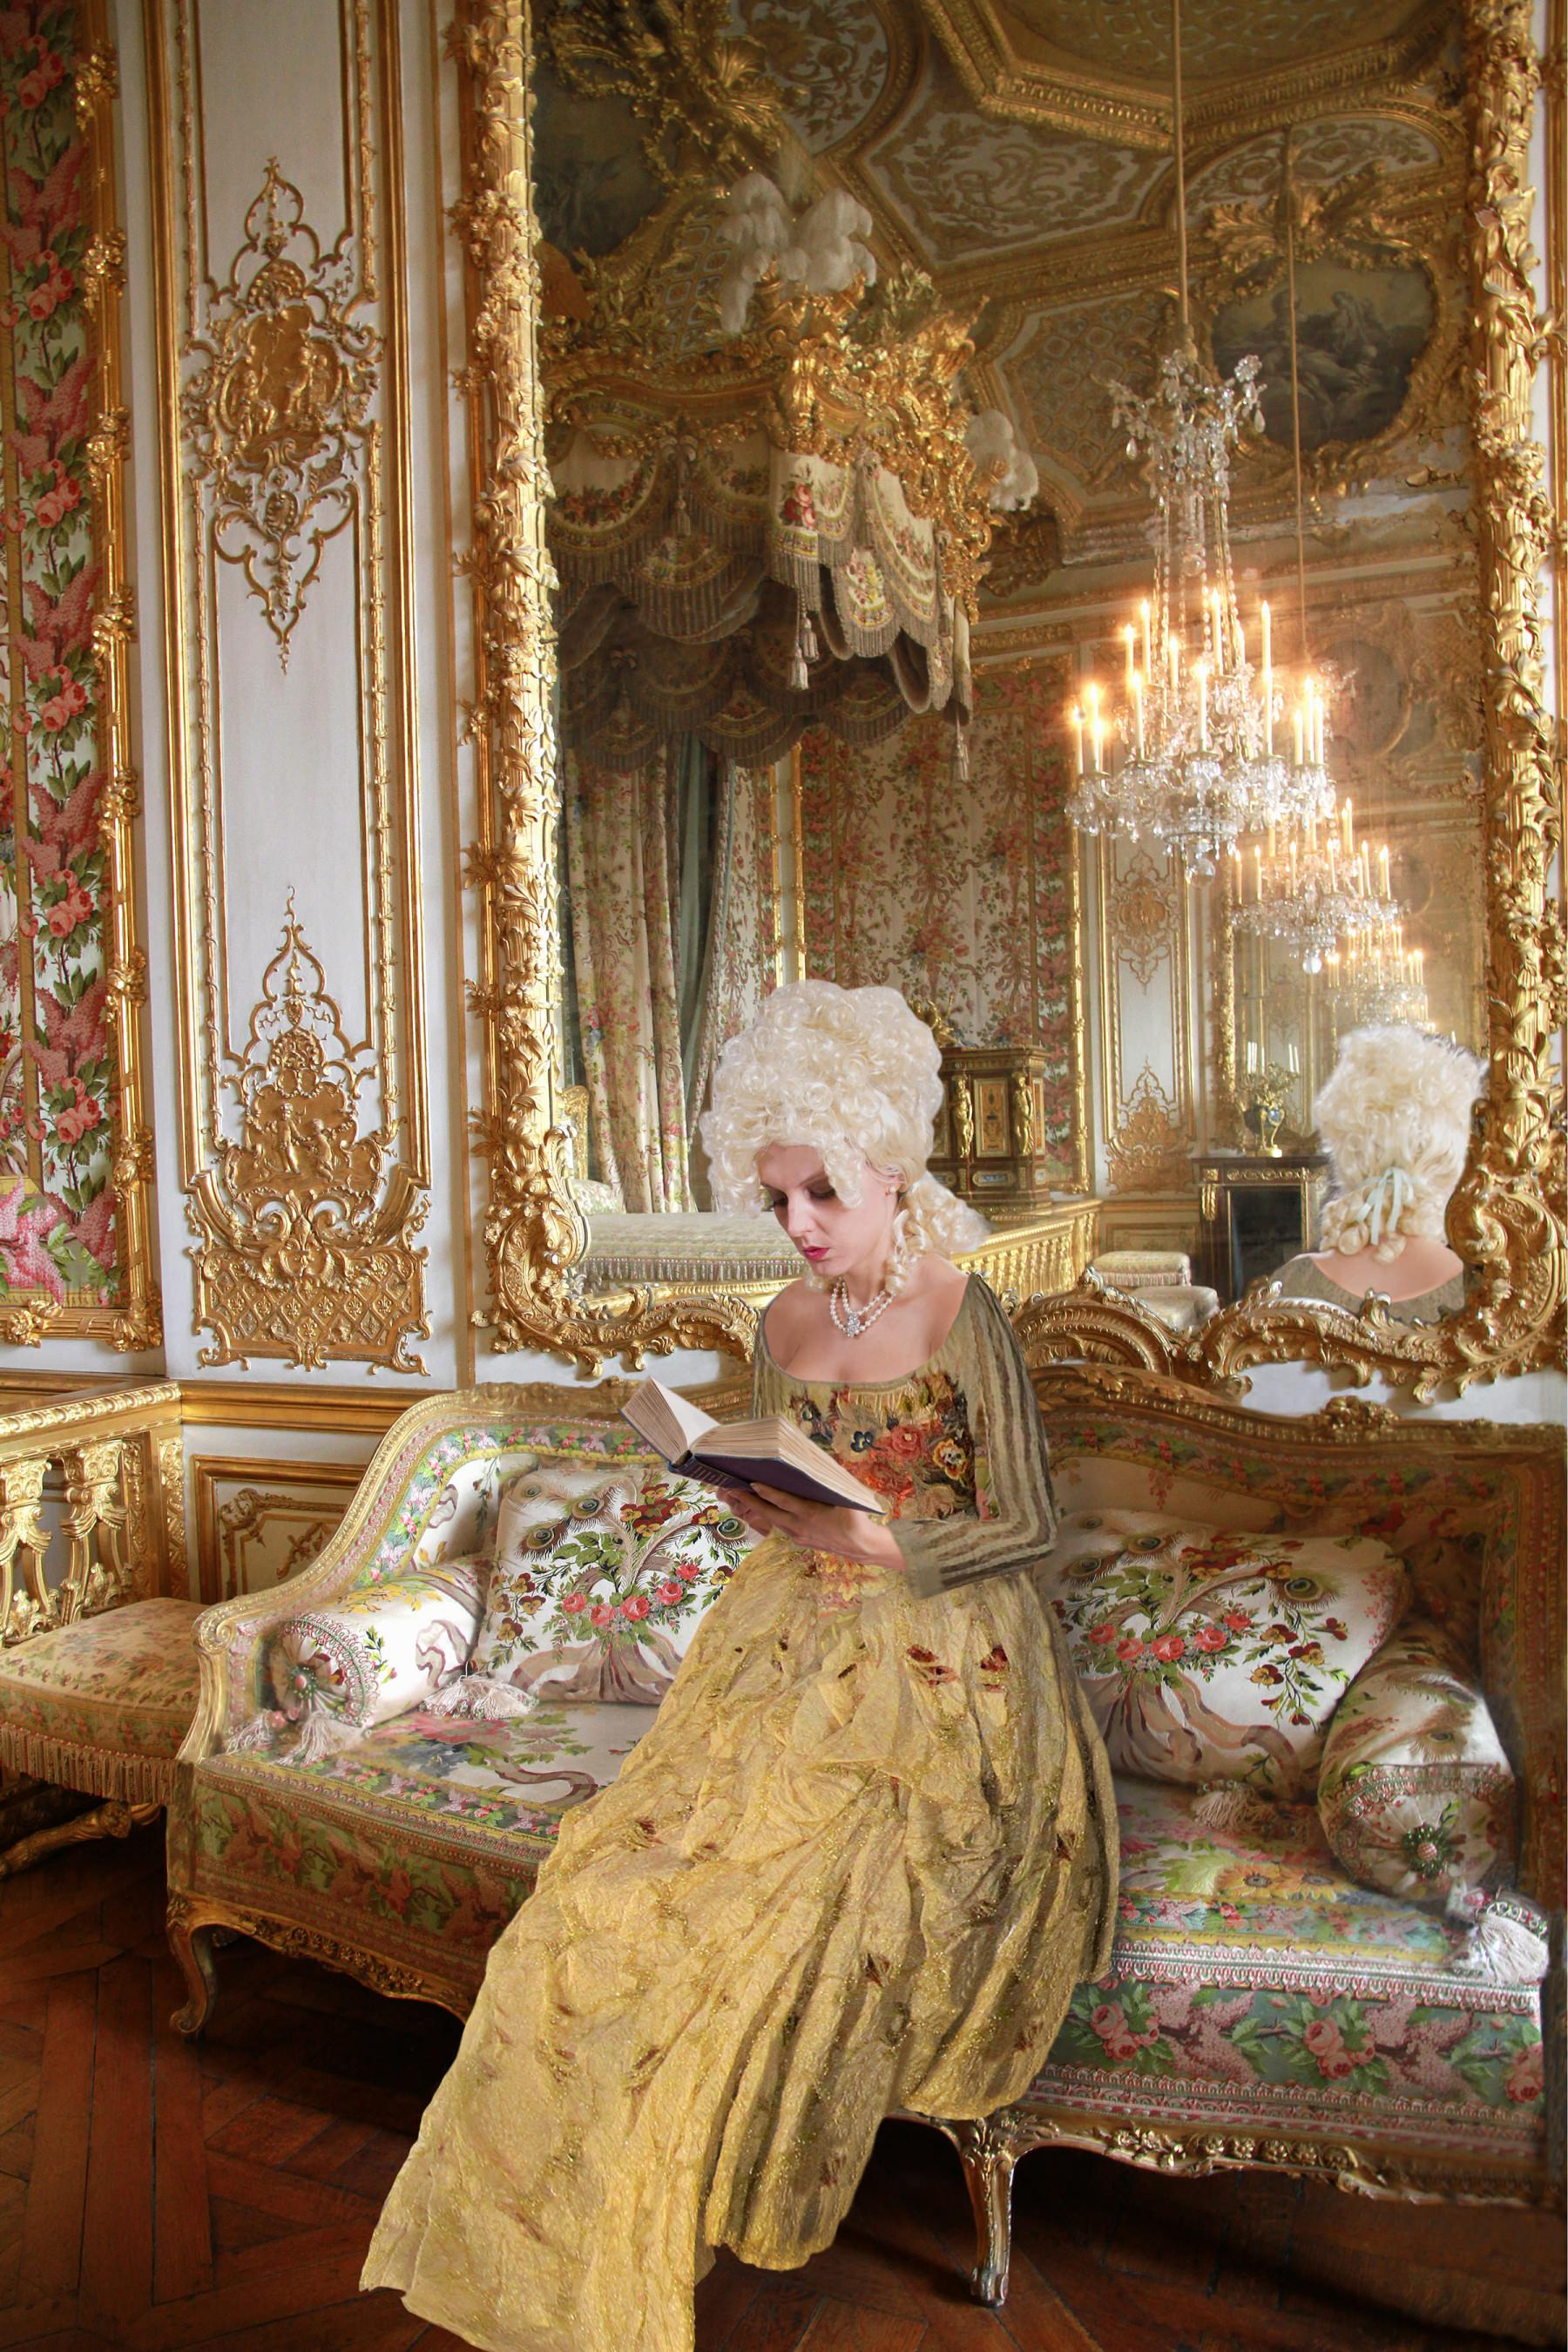 Holly Armishaw_Marie Antoinette_Reading Rousseau Discourse on the Origins of Inequality